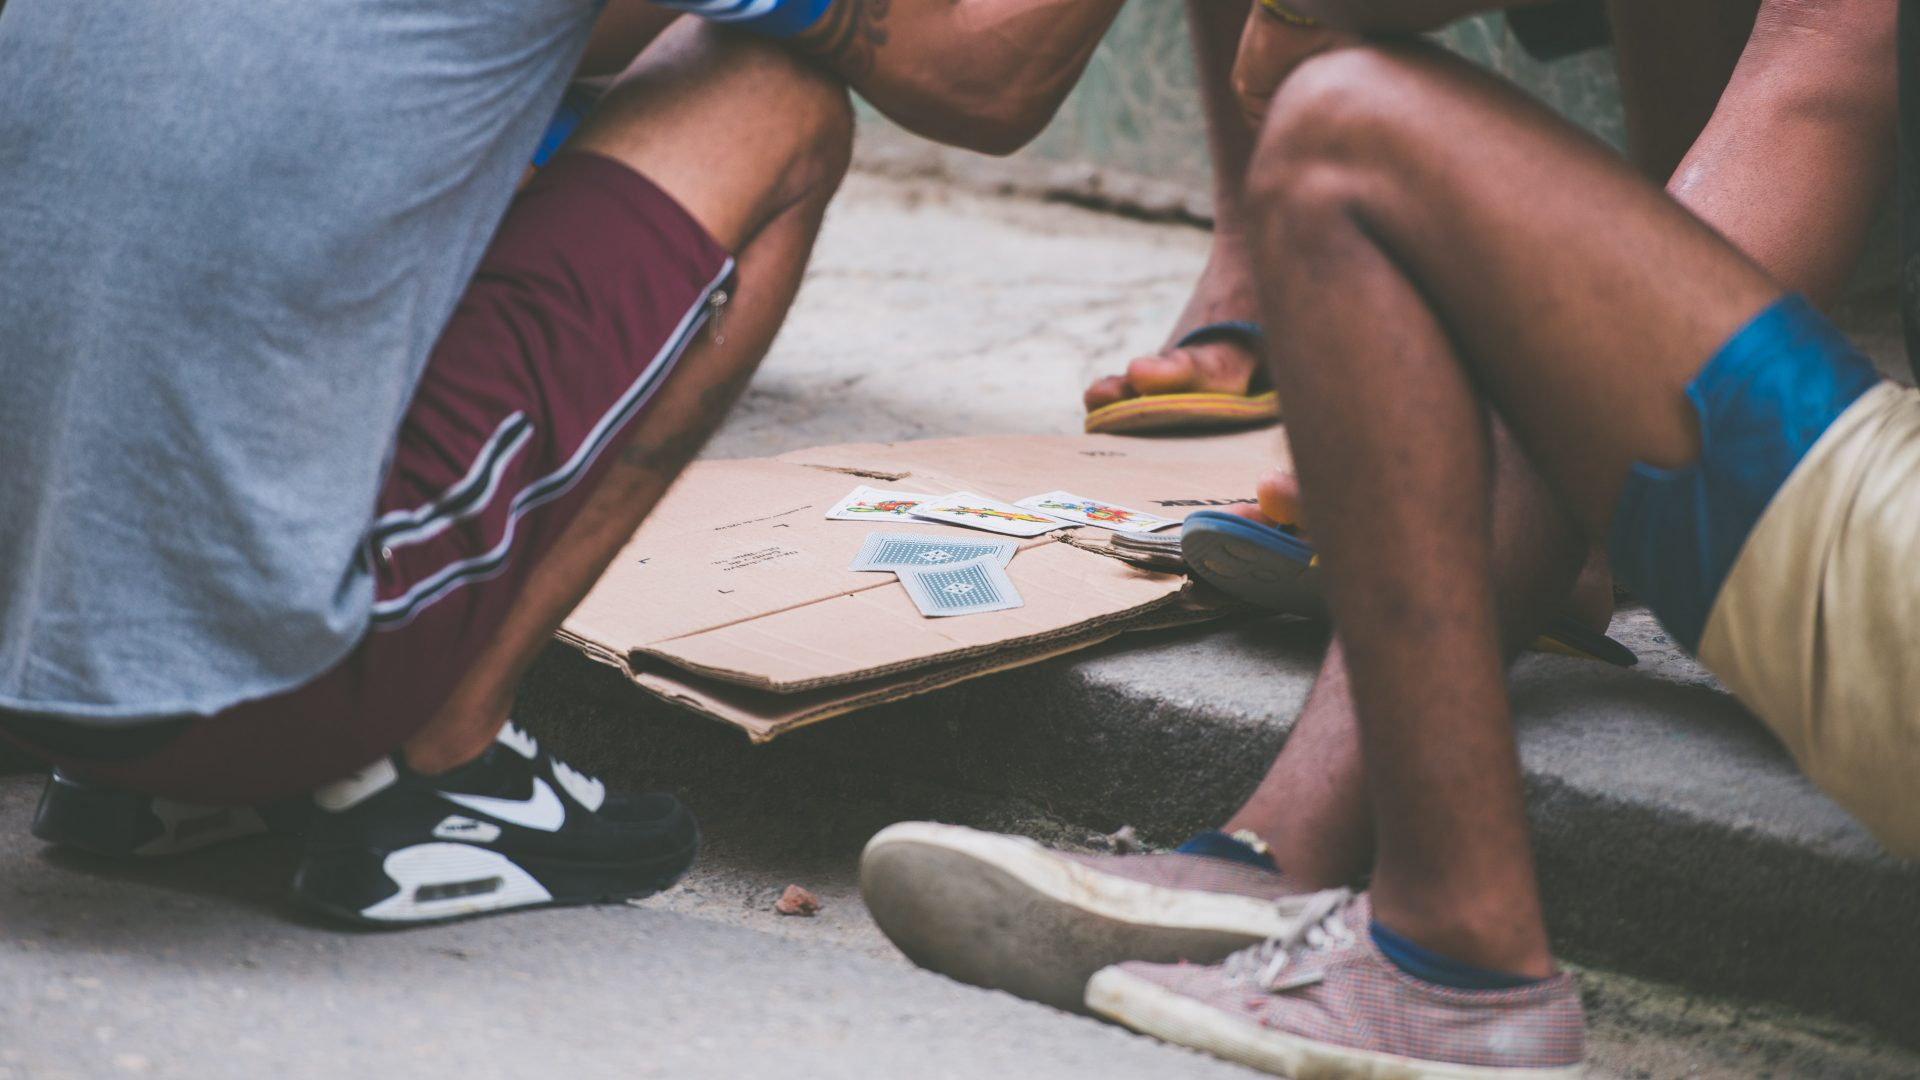 People play cards in the streets of Central Havana, Cuba.